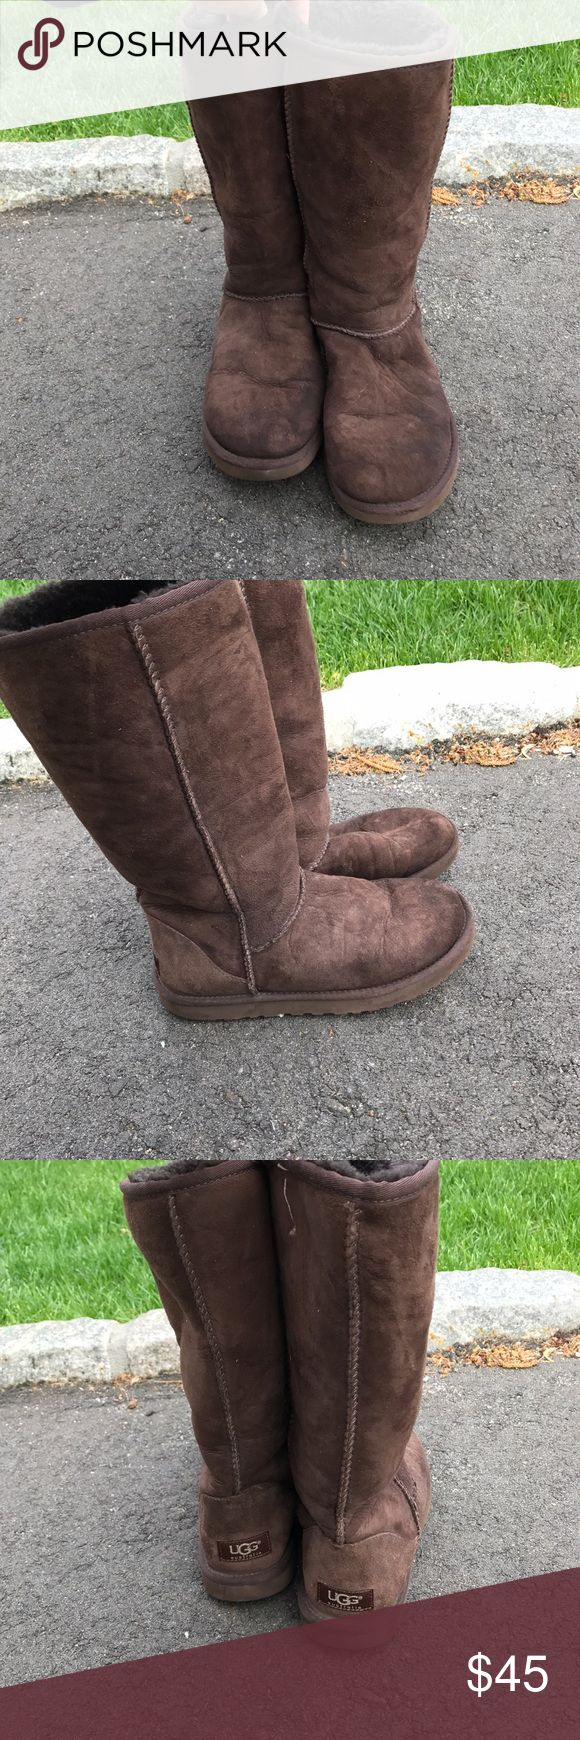 Authentic Australian Ugg Boots A little worn, but can be repaired. Very comfortable and warm. Ugg Australia. UGG Shoes